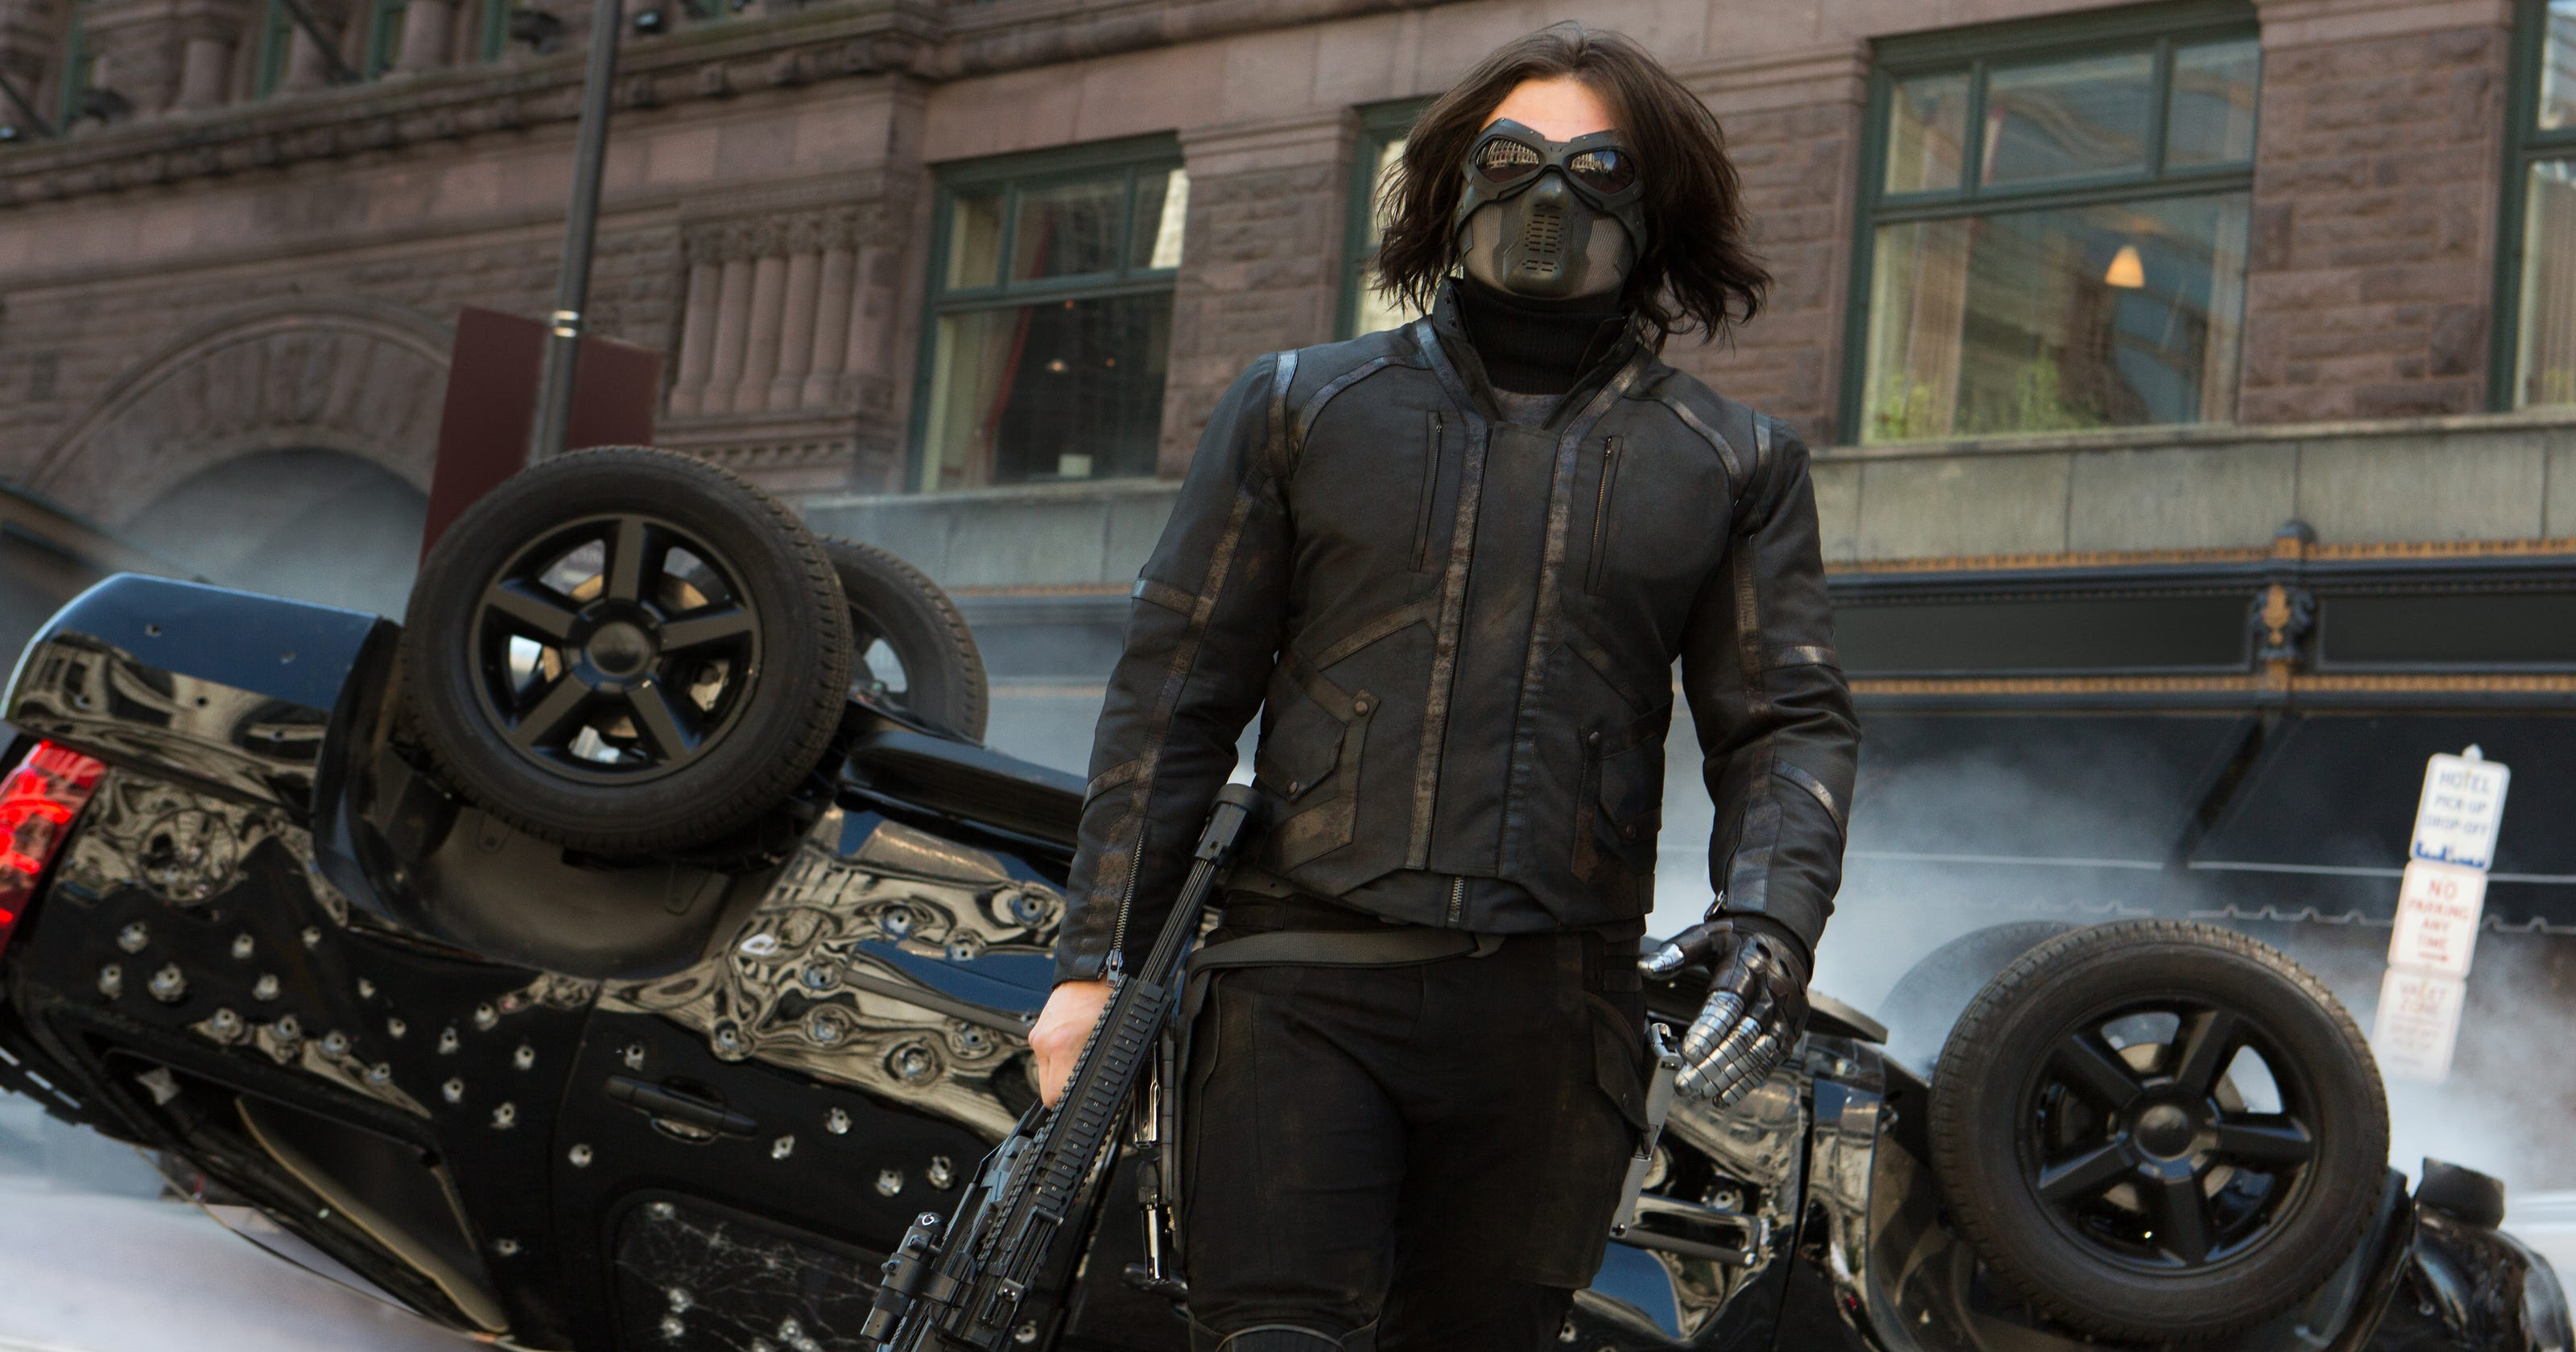 Stan is a man of action as 'The Winter Soldier'